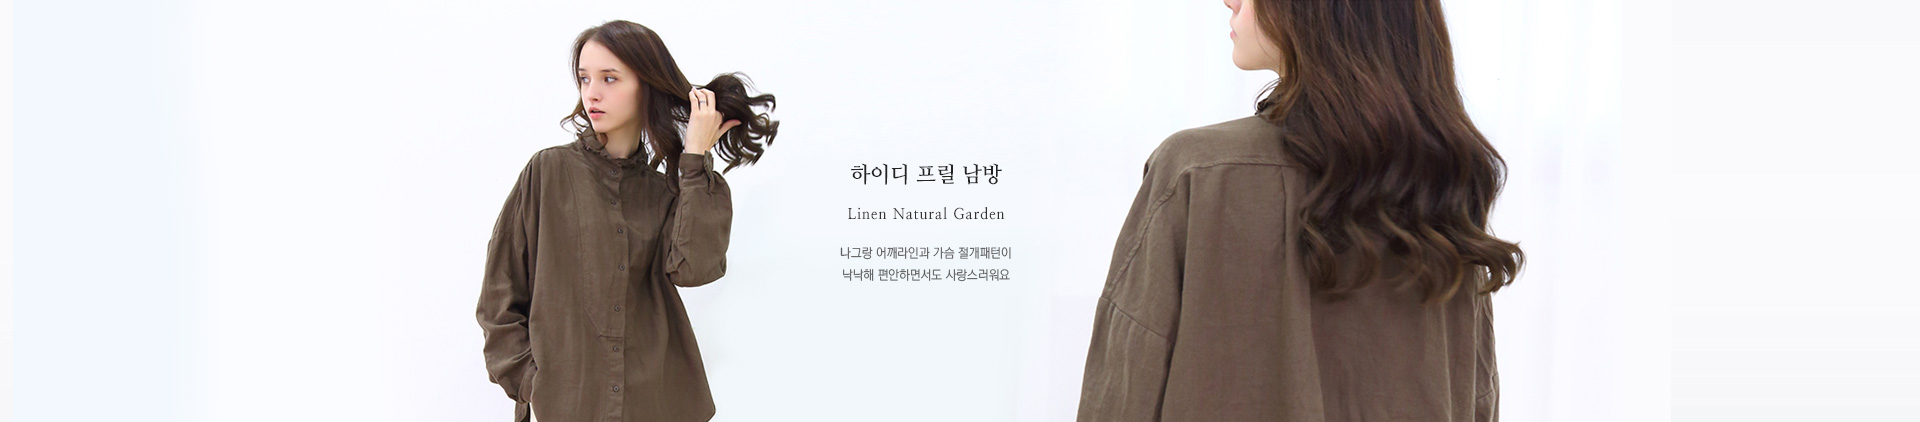 http://linennatural.com/product/detail.html?product_no=8201&cate_no=142&display_group=1